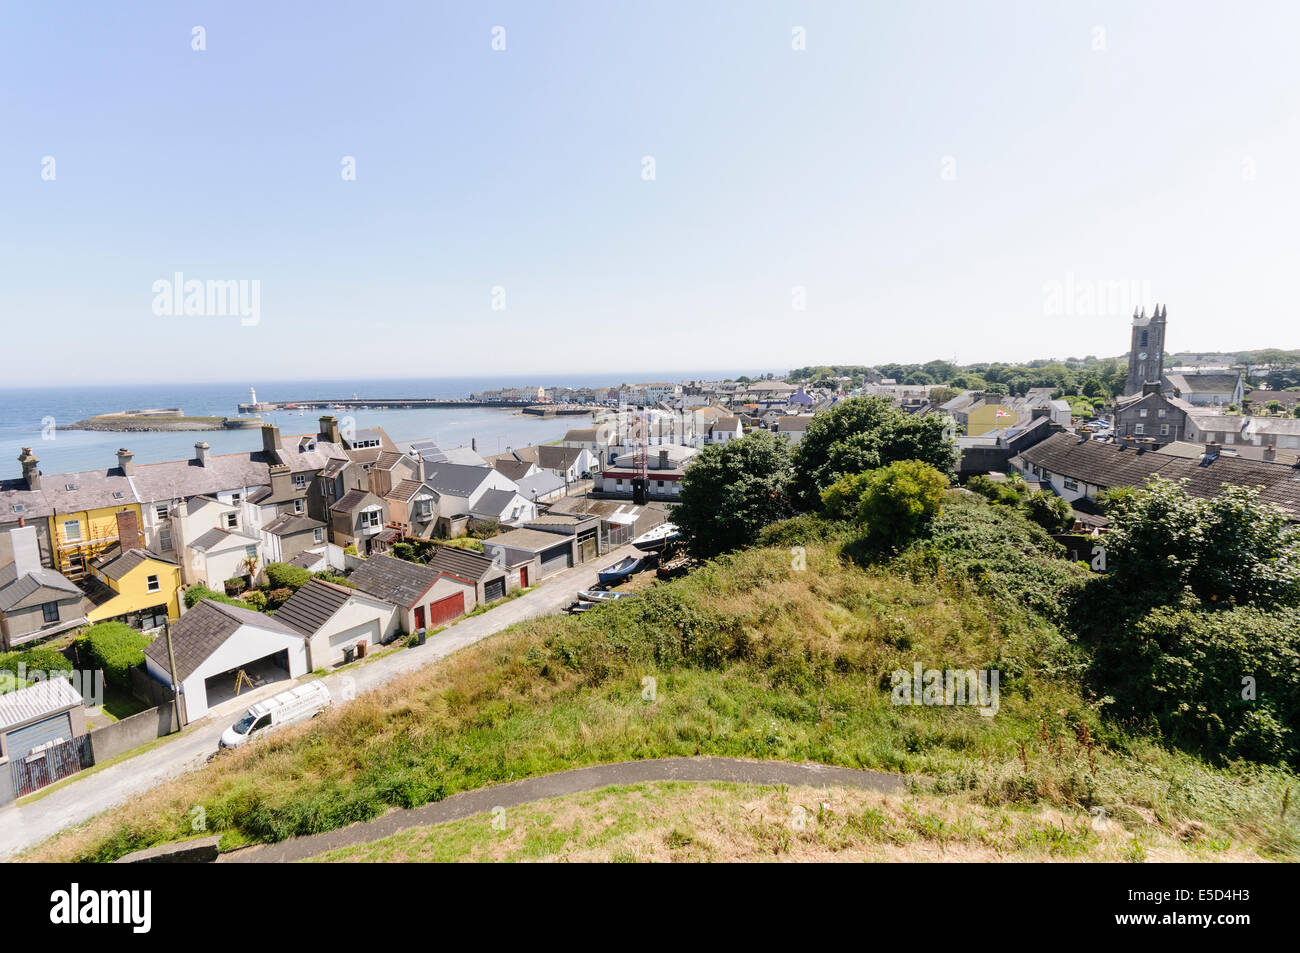 Town of Donaghadee, County Down, Northern Ireland - Stock Image